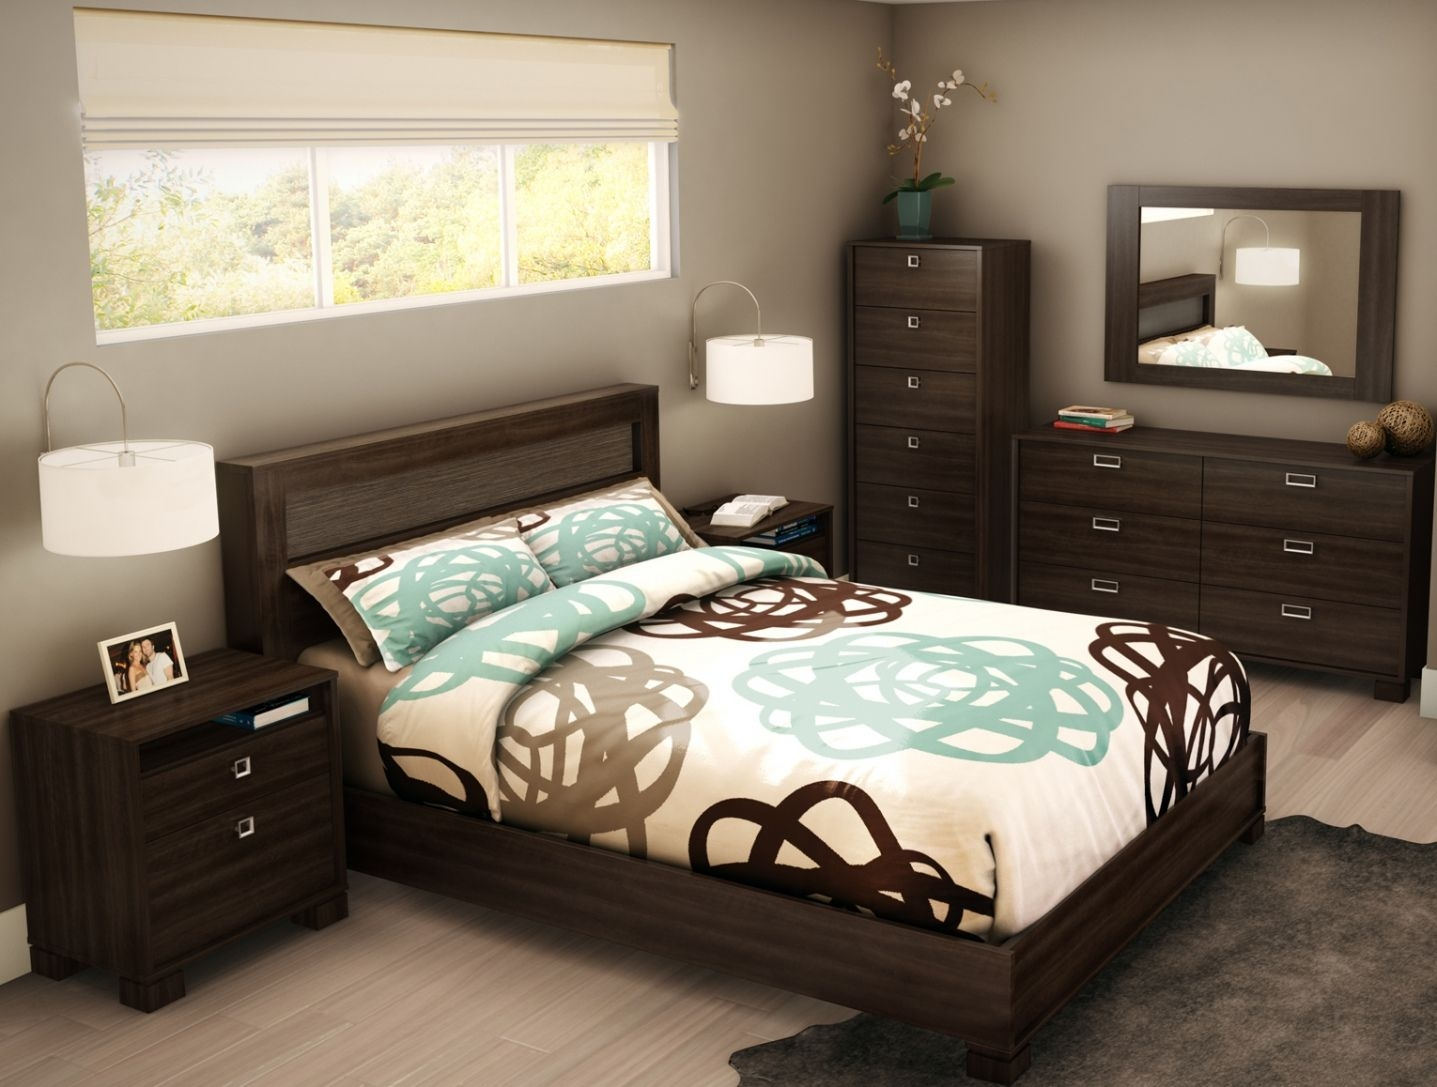 Bedroom Sets For Small Rooms Low Budget Bedroom Decorating Ideas